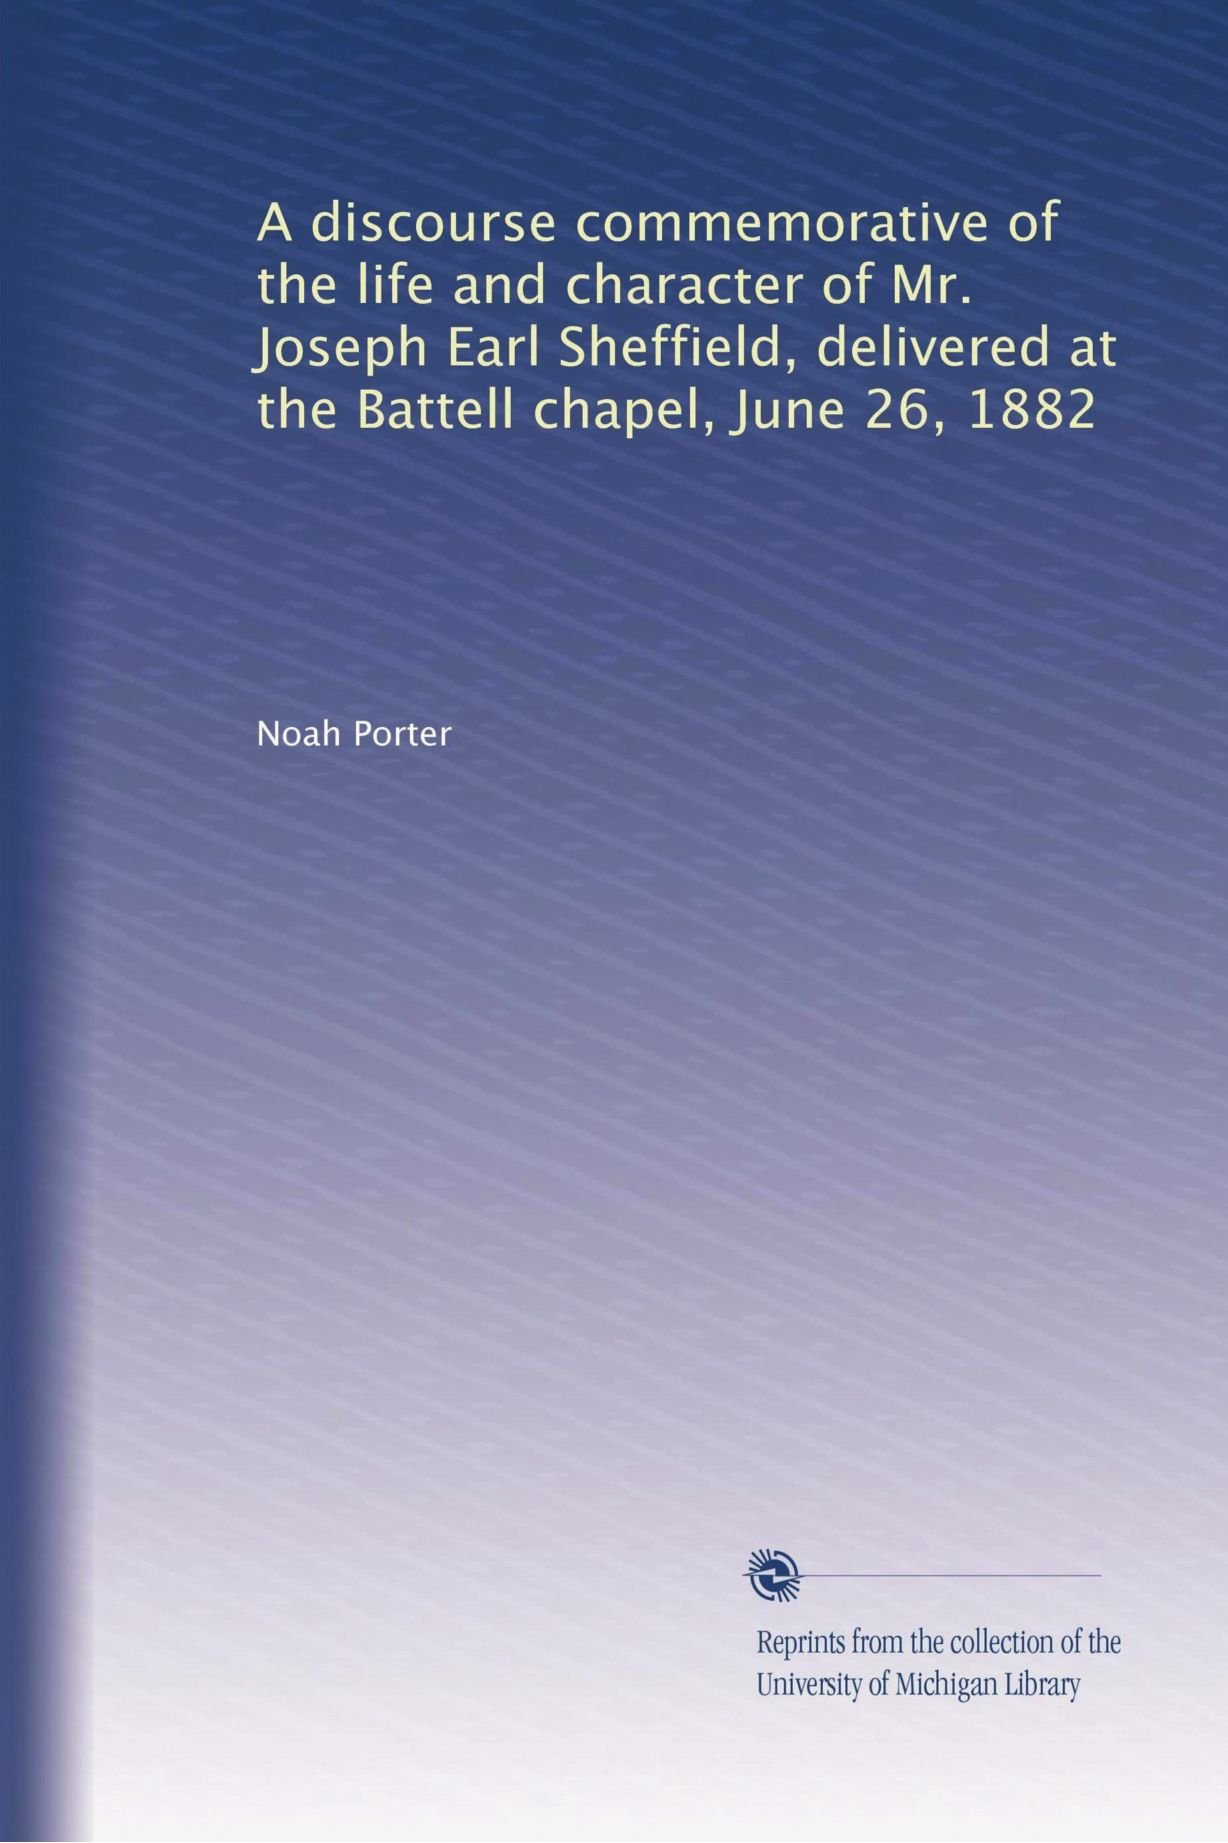 A discourse commemorative of the life and character of Mr. Joseph Earl Sheffield, delivered at the Battell chapel, June 26, 1882 ebook